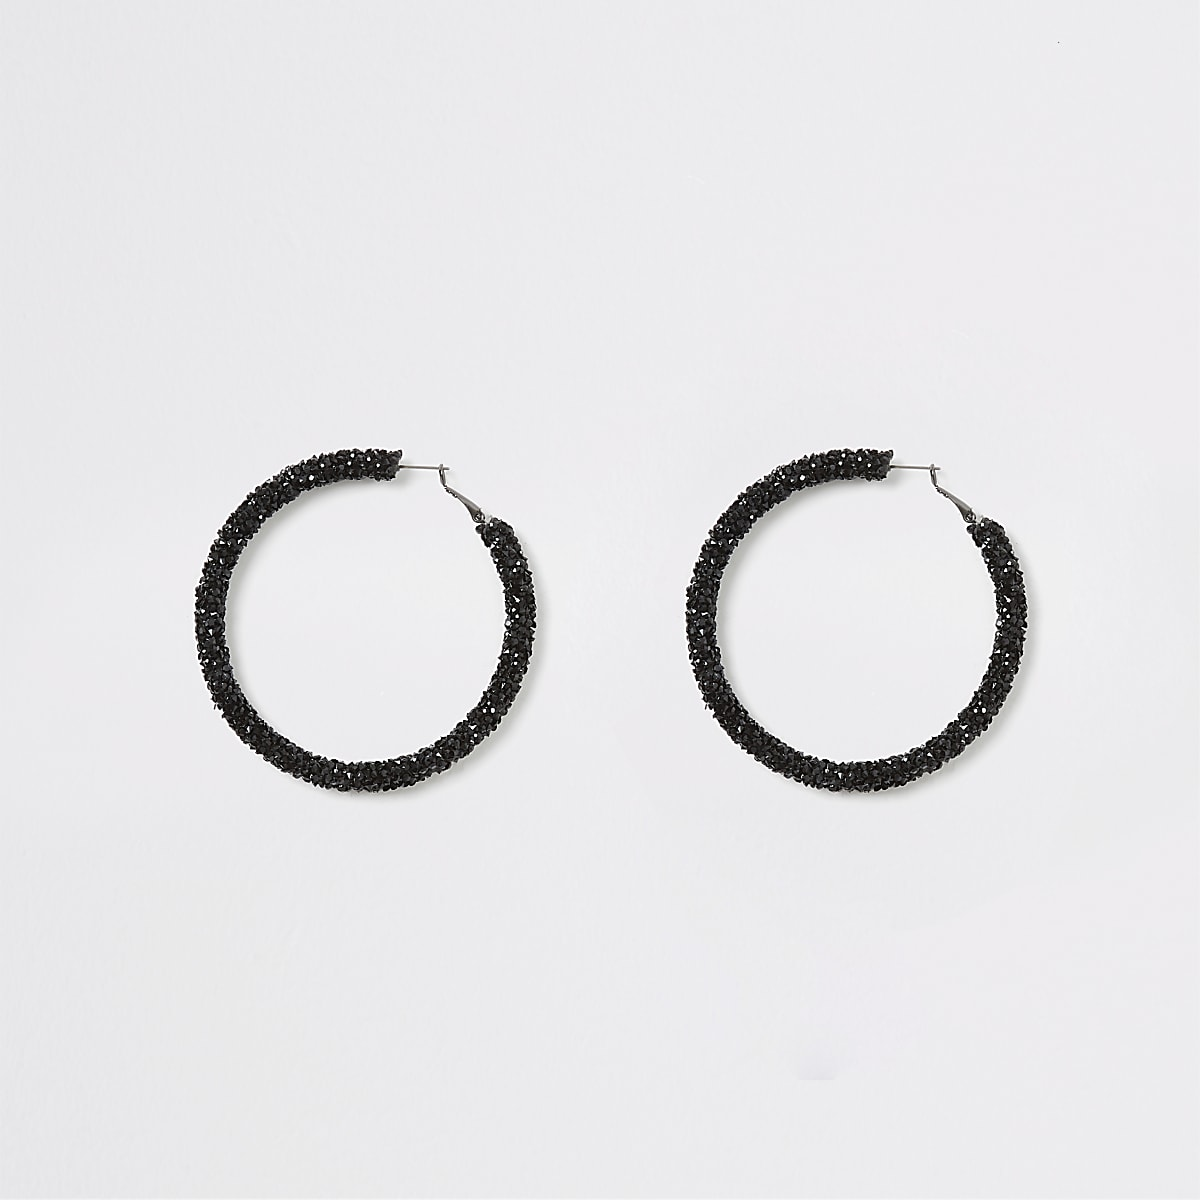 Black sparkle embellished hoop earrings